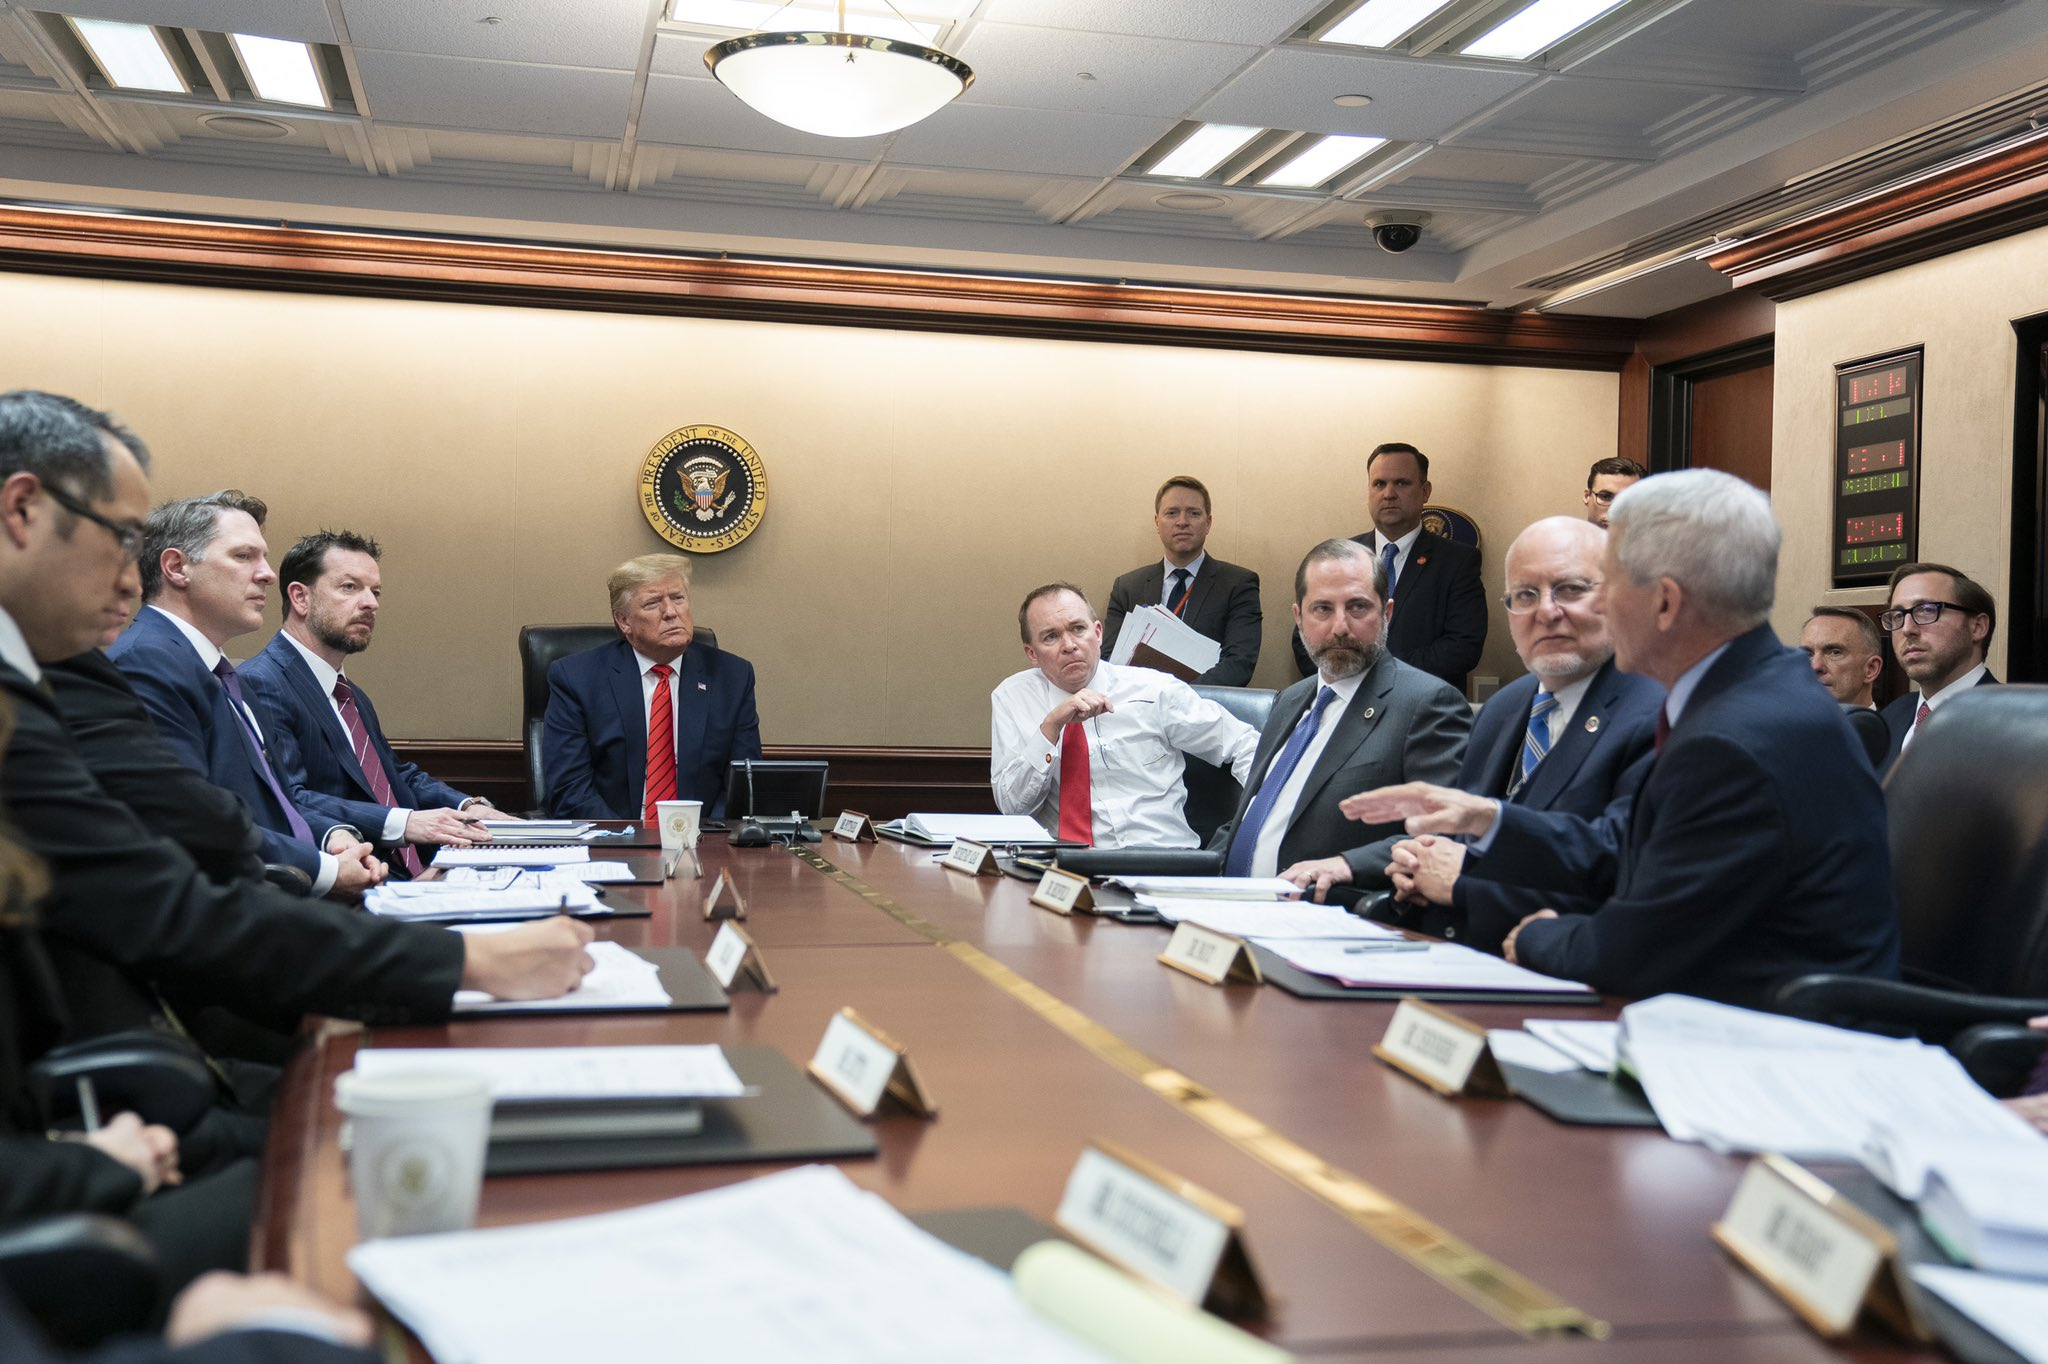 File:Donald Trump Coronavirus briefing.jpg - Wikimedia Commons